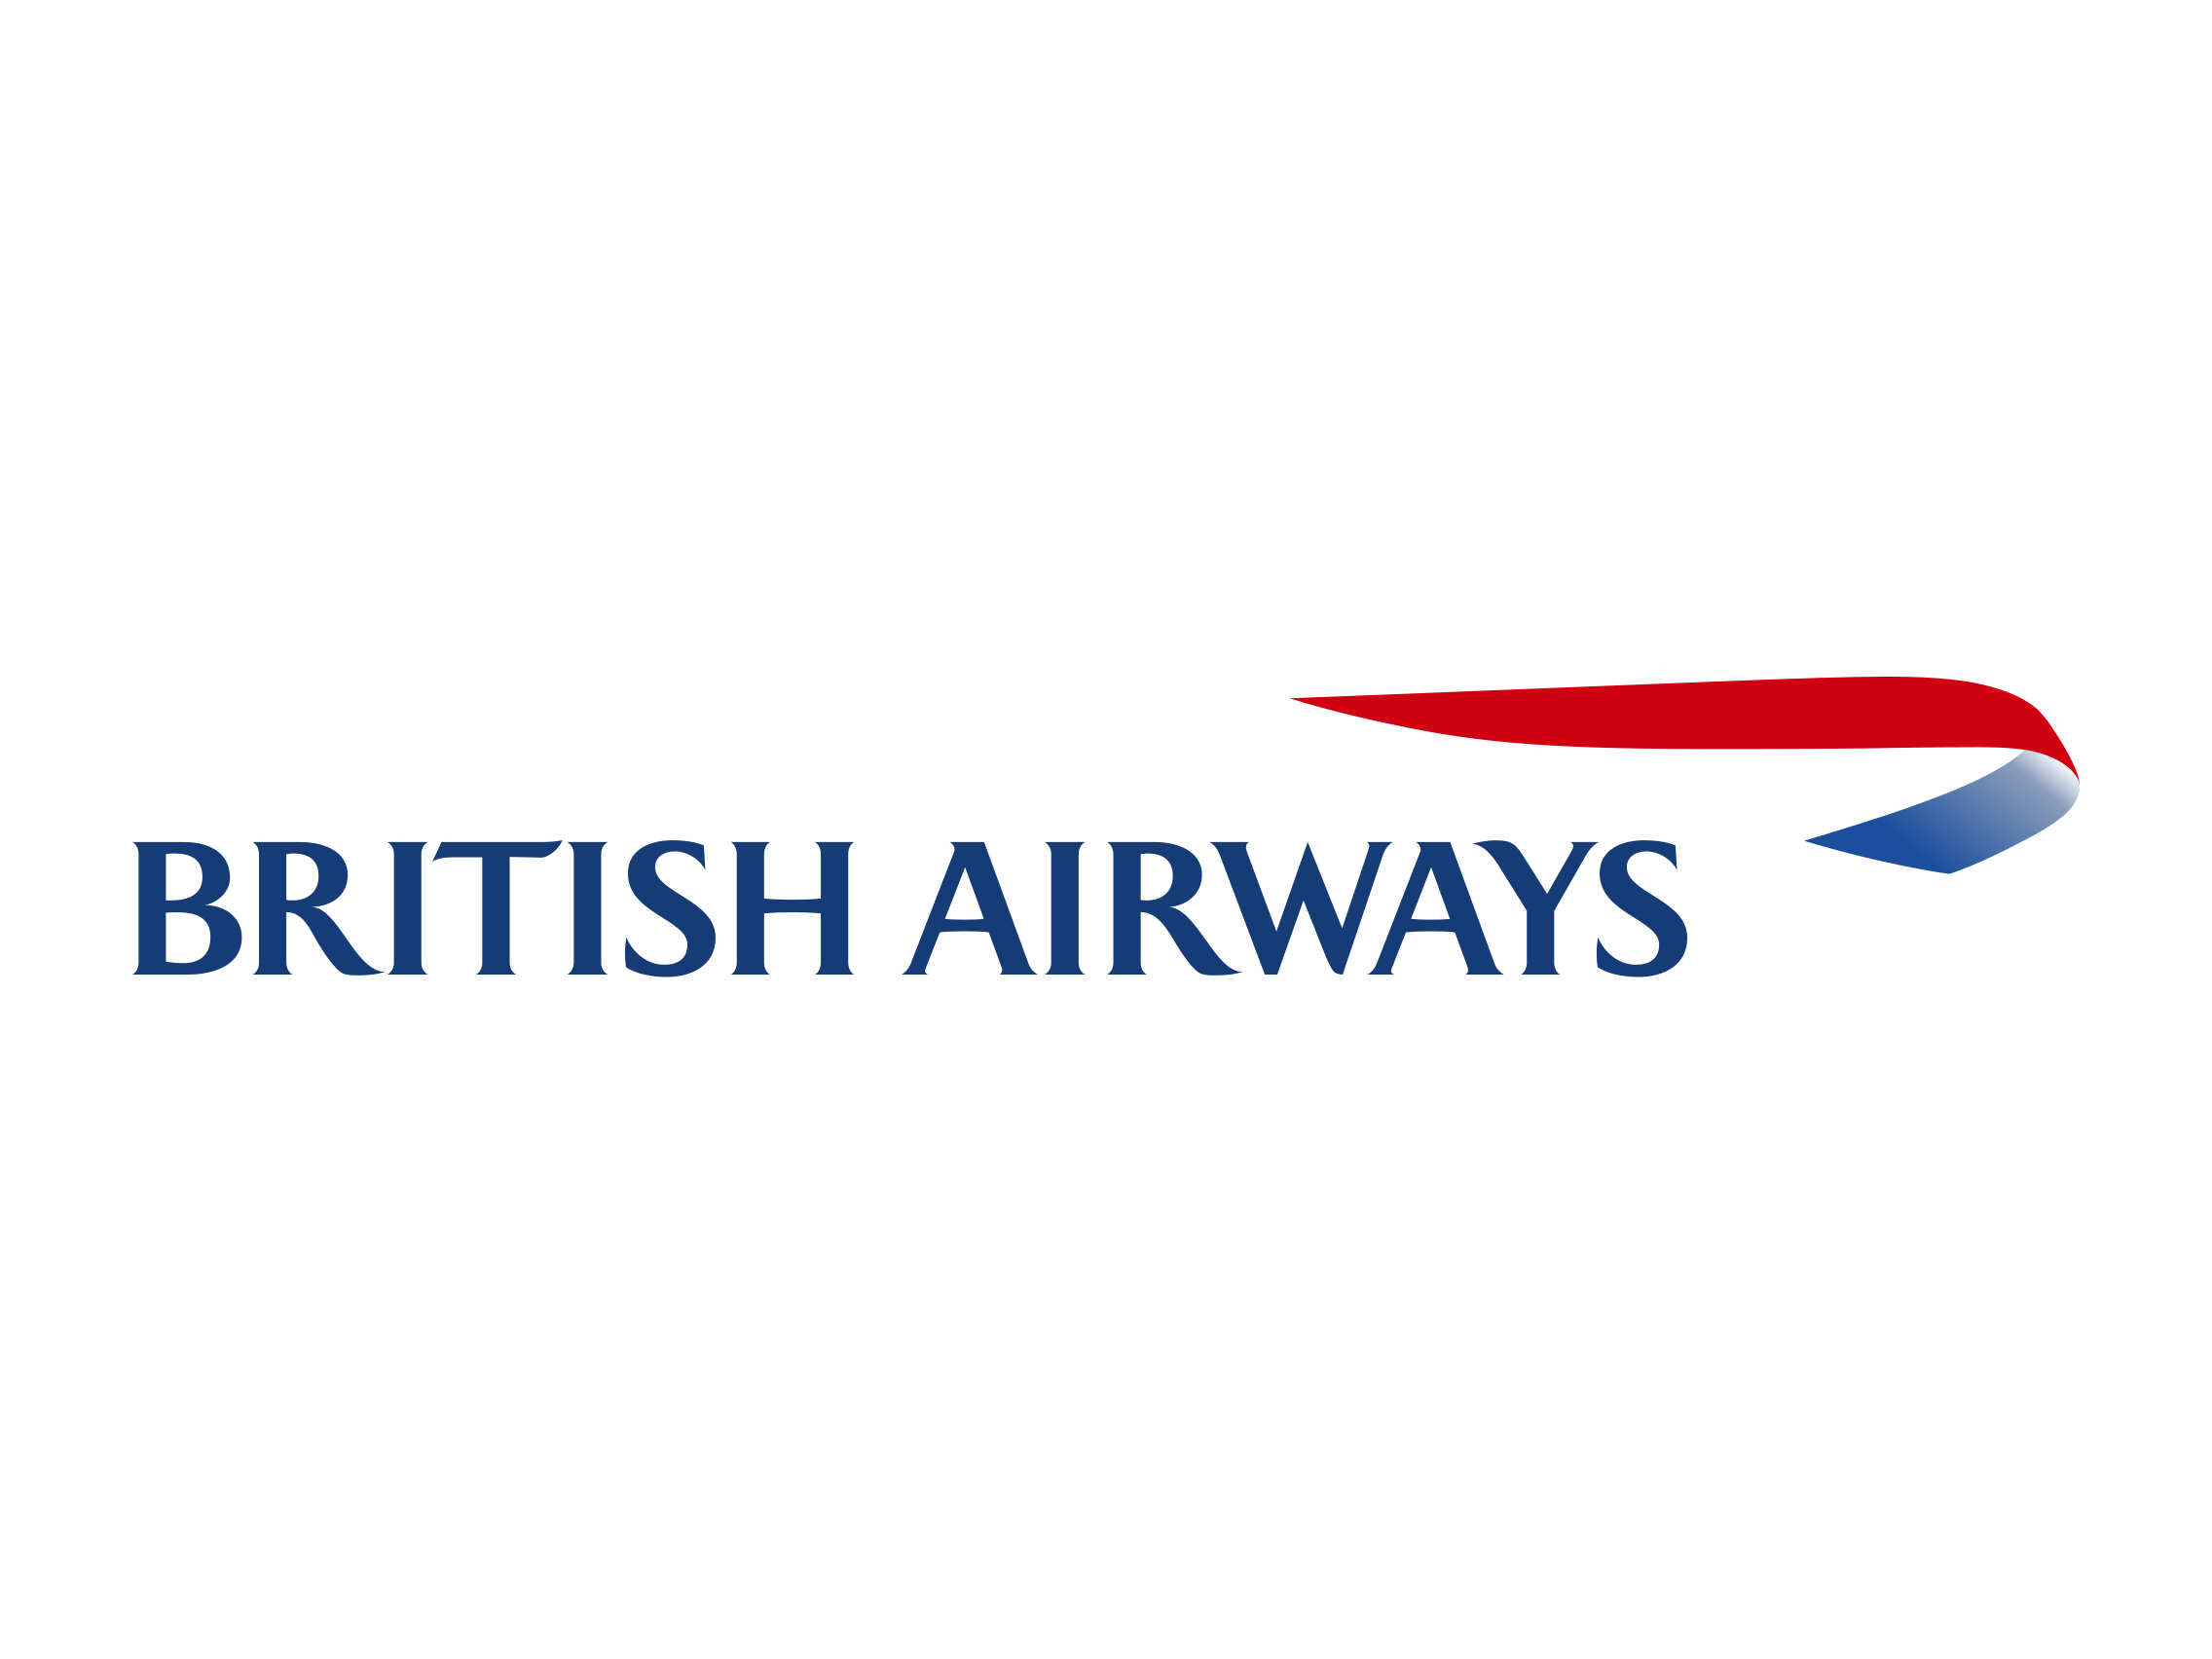 Fly Over 170 Destinations With British Airways Helpline